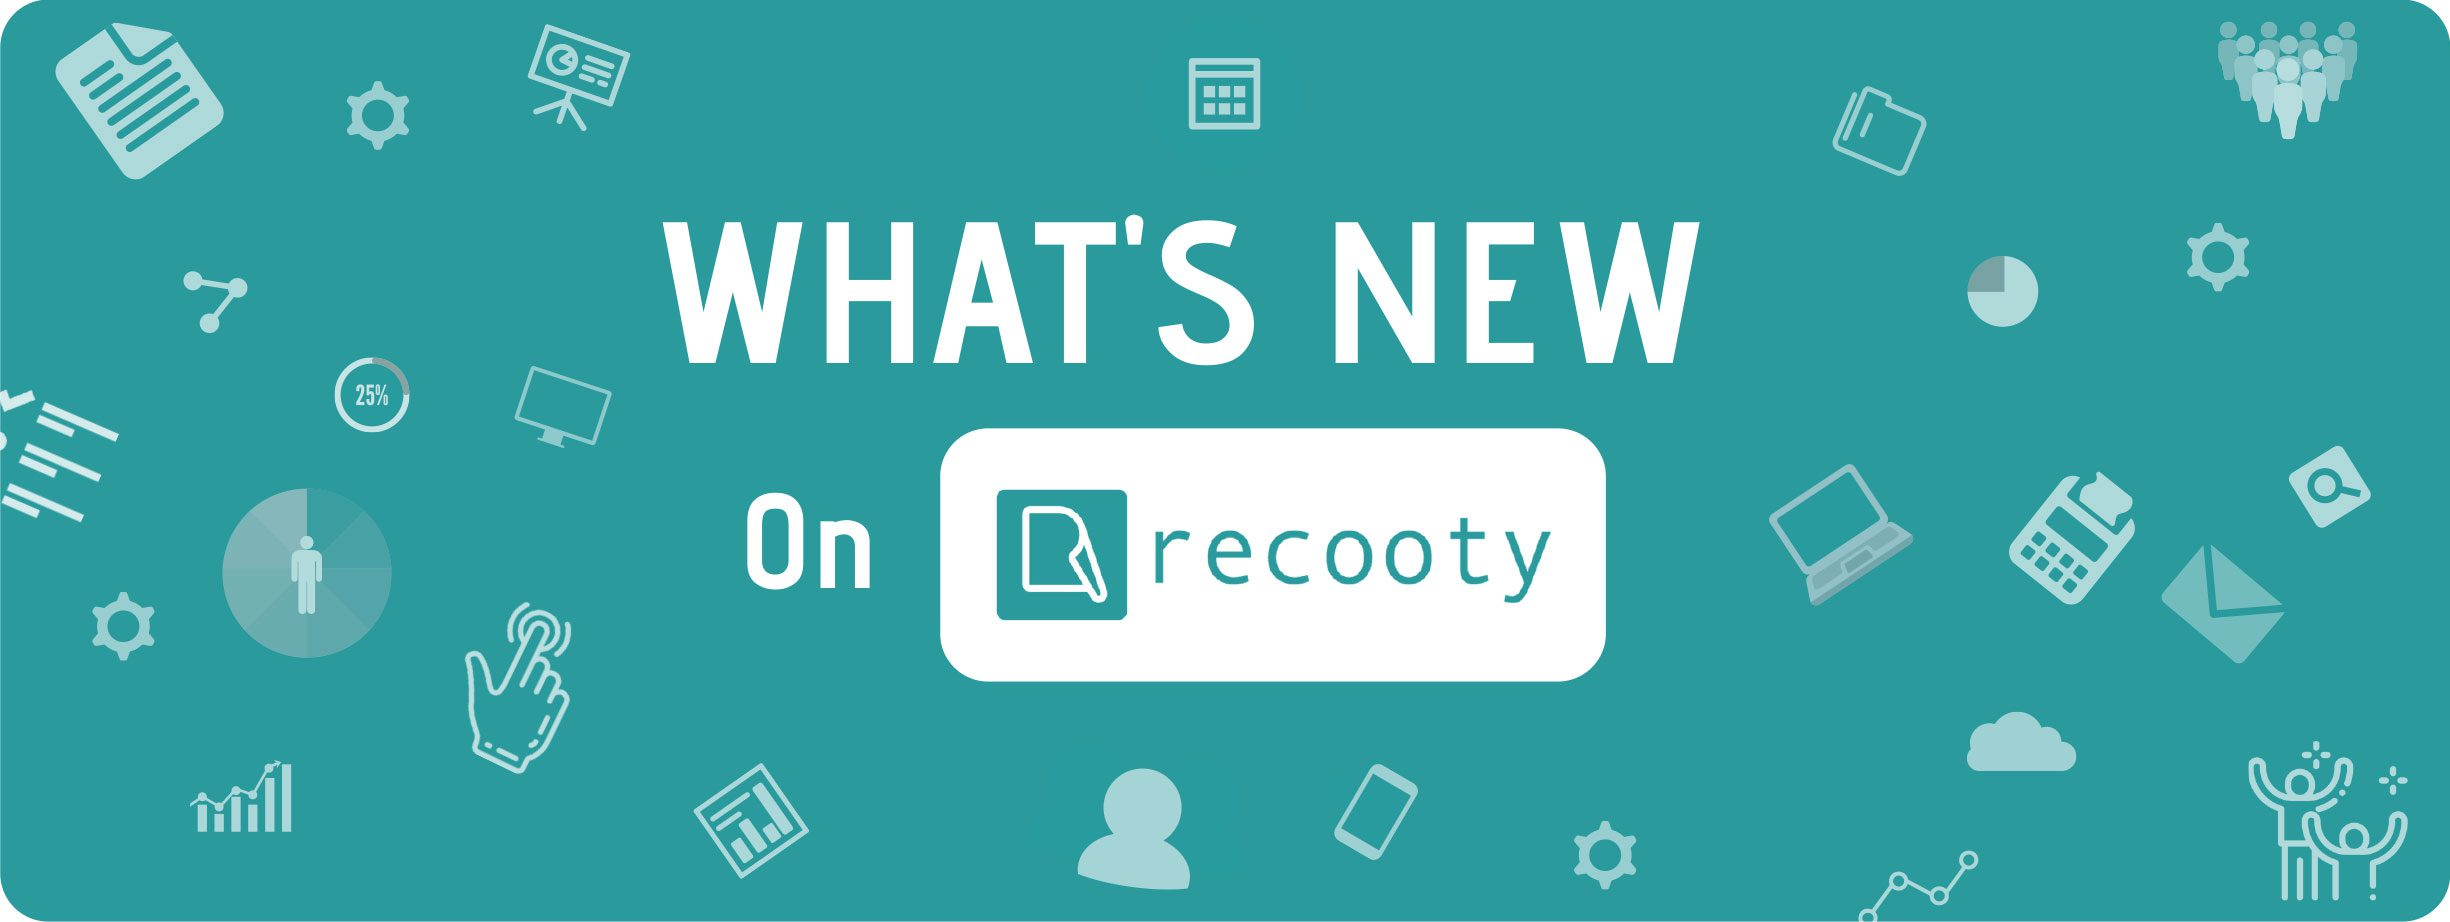 What new on Recooty